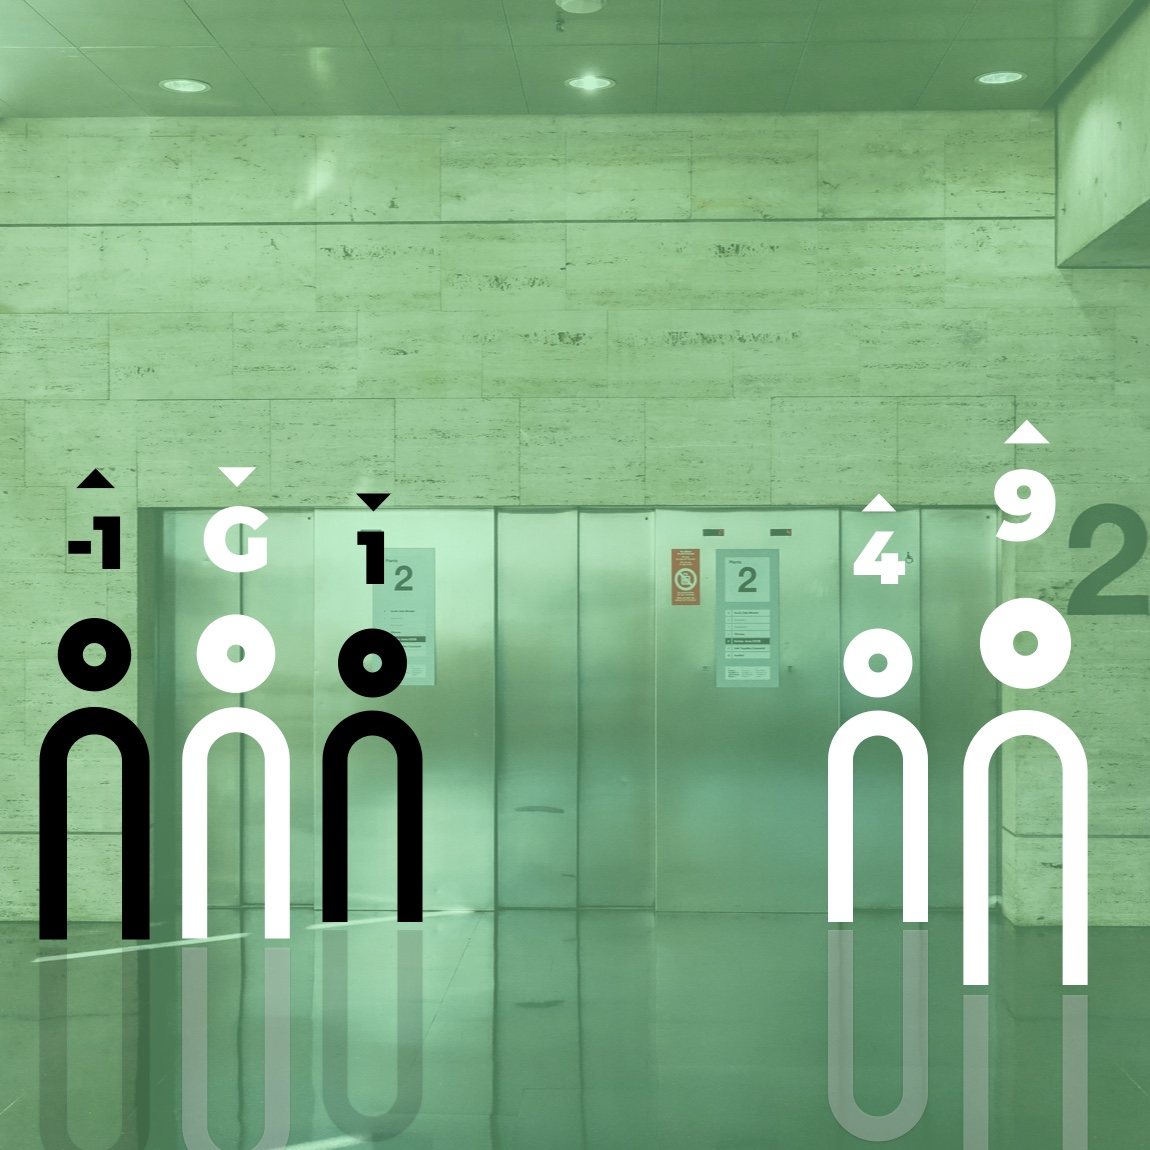 Image of two smart elevators and users